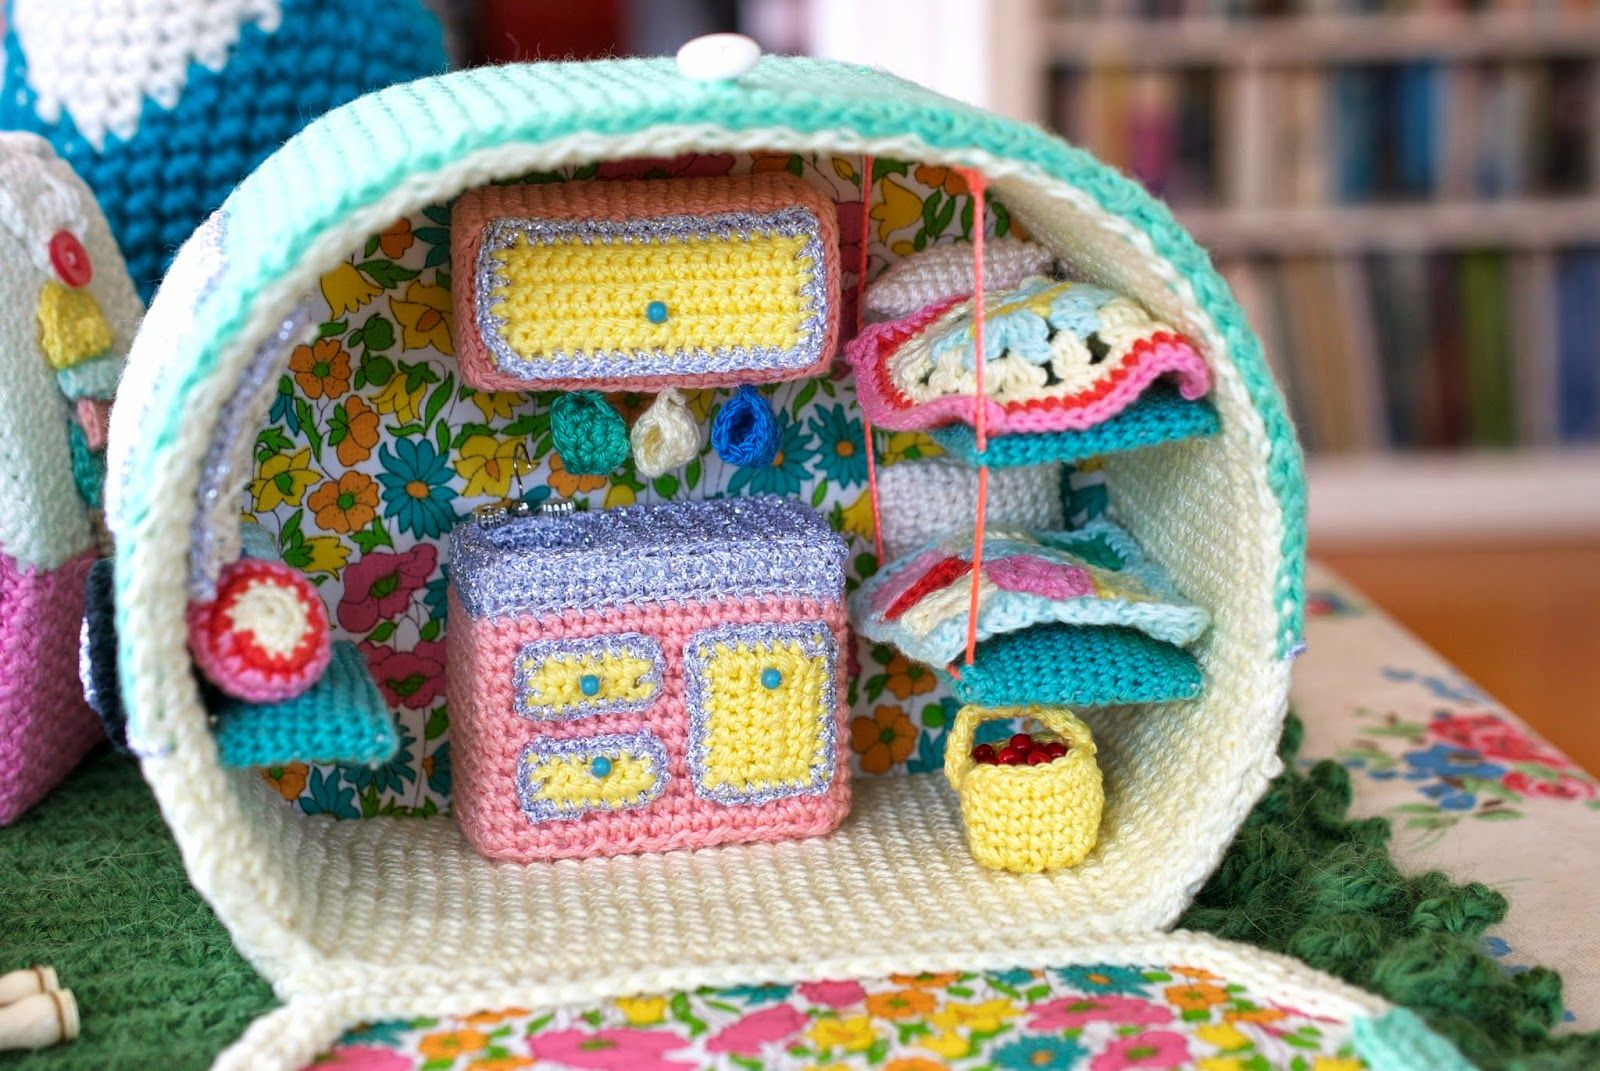 Crochet camper van greedy for colour cq crochet home https greedy for colour crochet caravan pattern news pattern book available sept 2015 from kyle books bankloansurffo Image collections